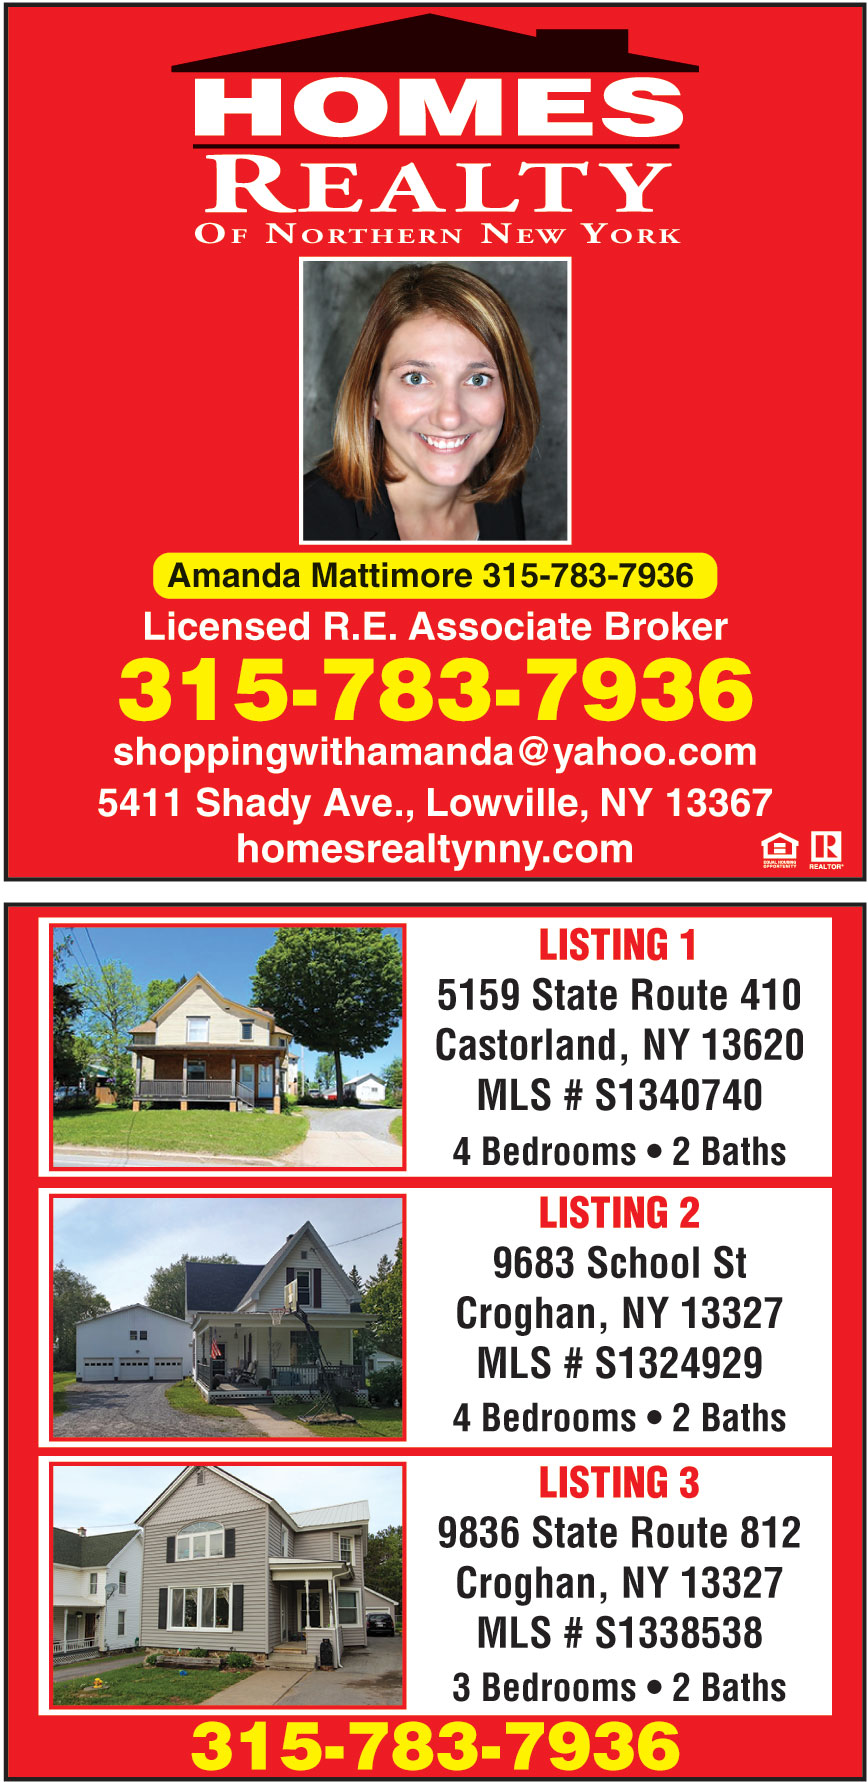 HOMES REALTY OF NORTHERN